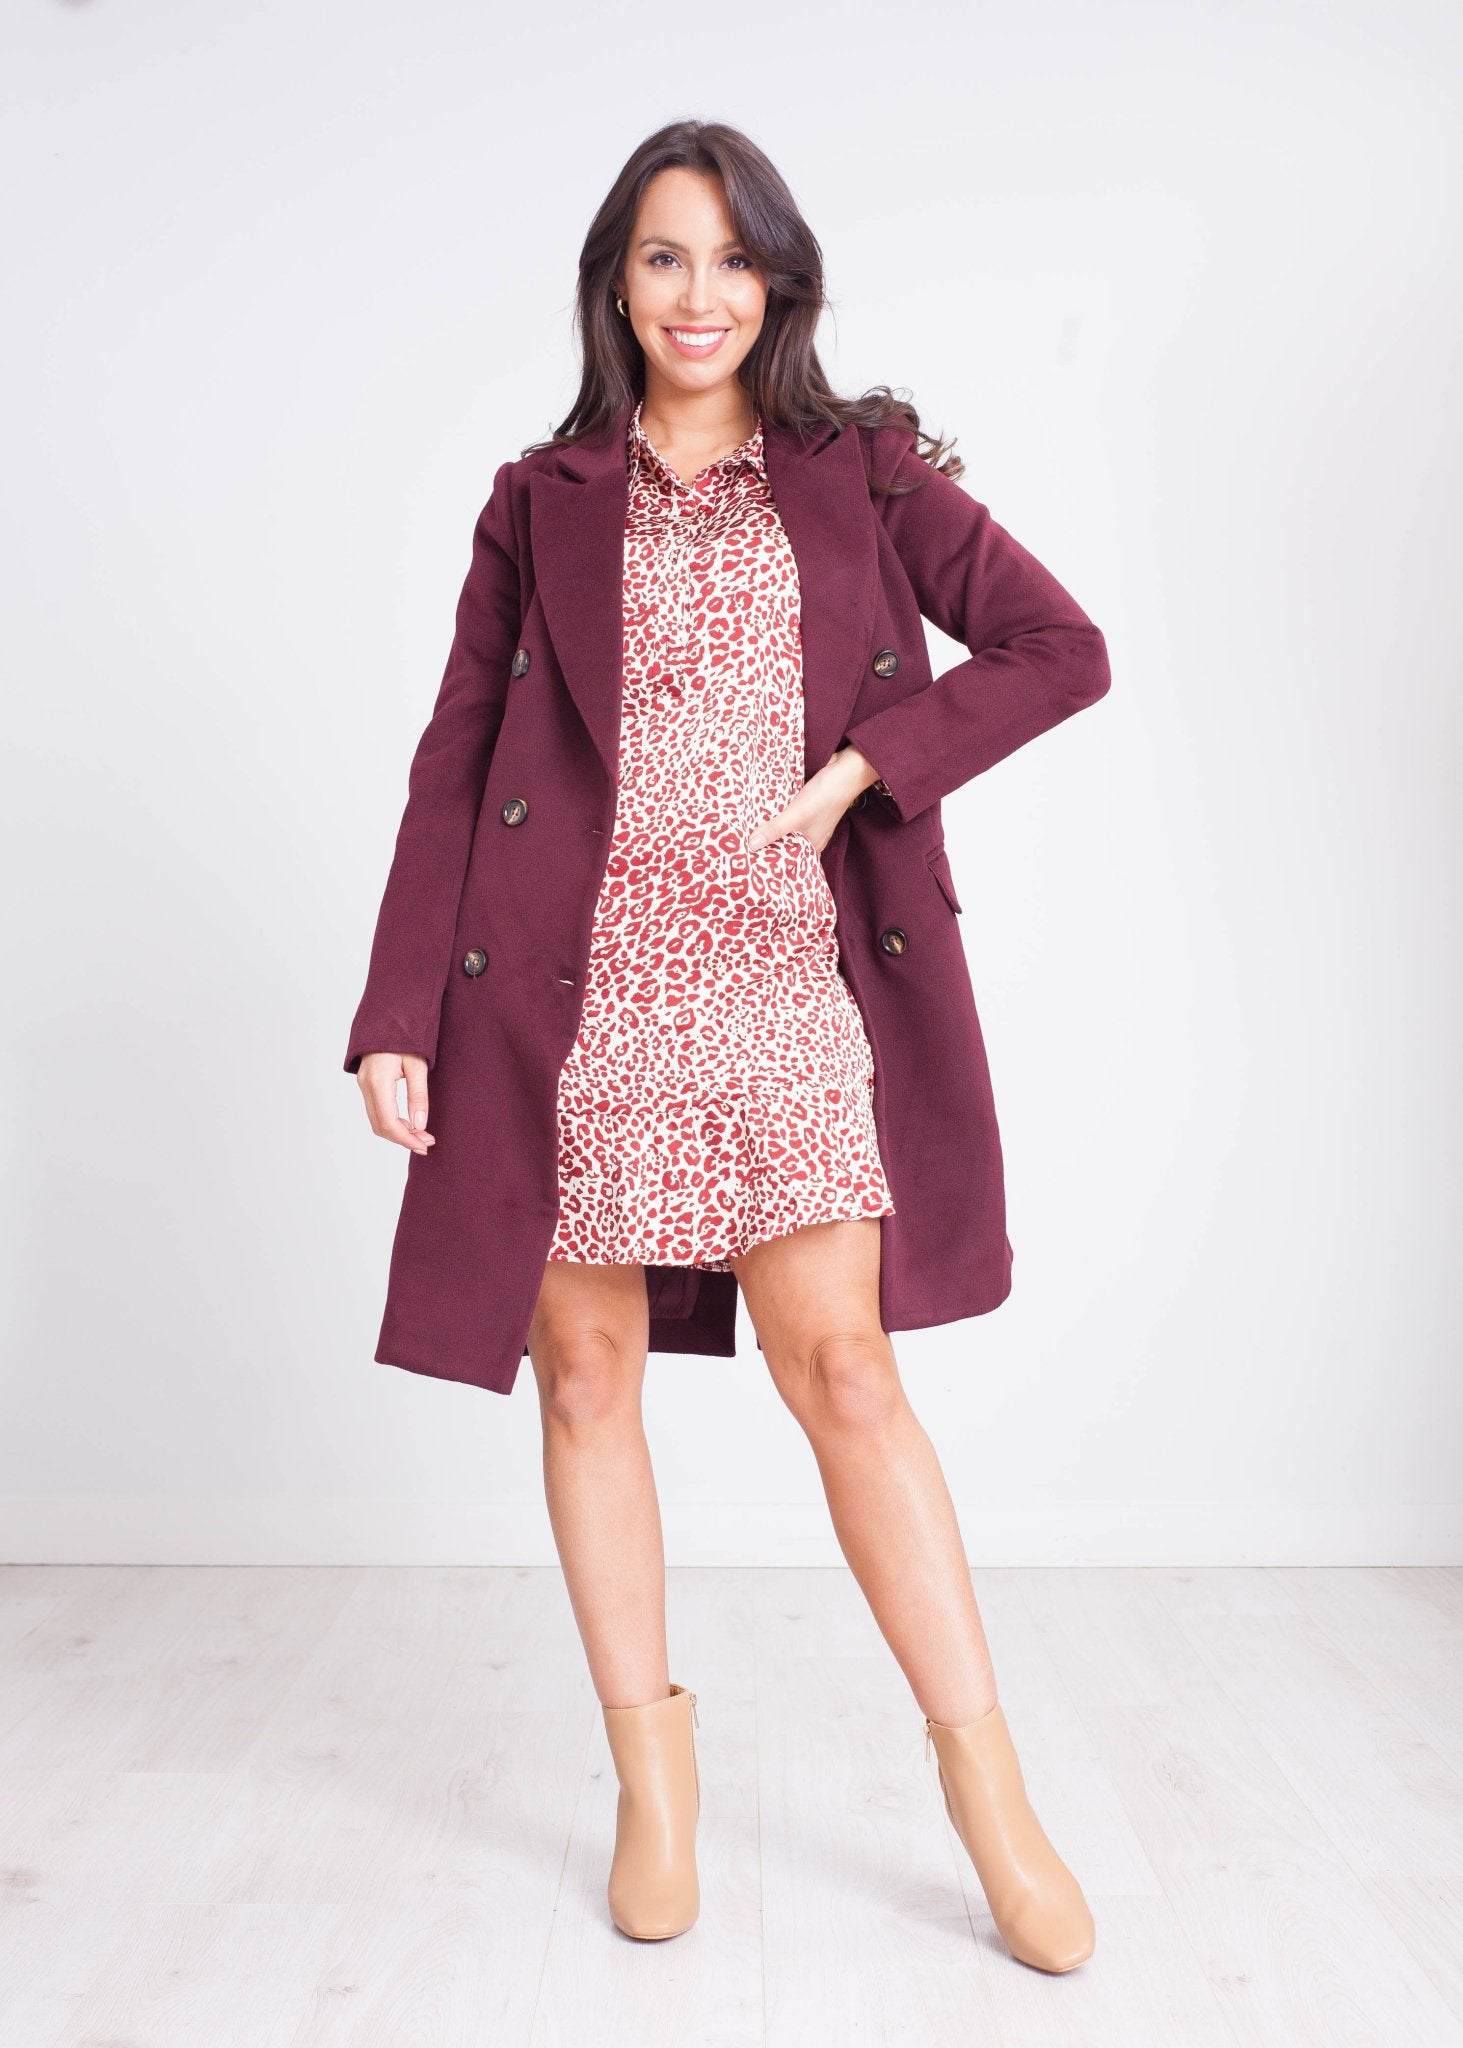 Elsa Leopard Print Mini Dress in Burgundy - The Walk in Wardrobe